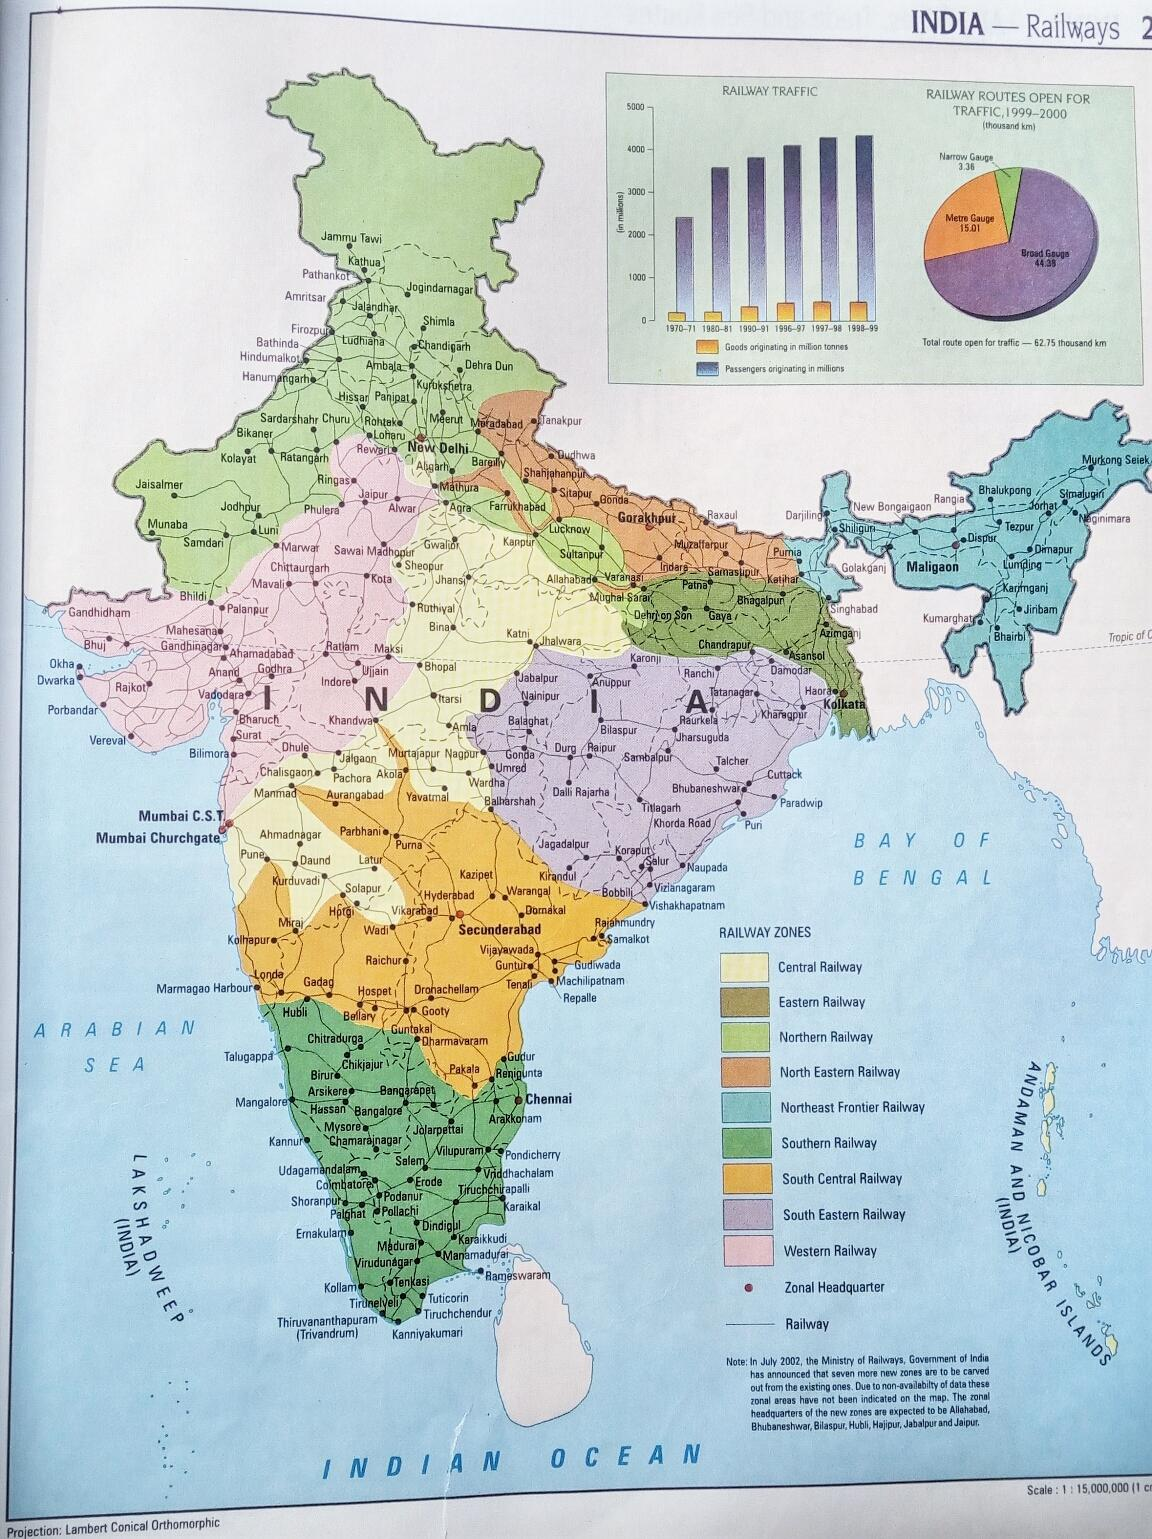 Indian railway forum 1 railway enquiry found this old atlas book of mine 1998 reprinted while teaching geographical map to my younger brother atlas map shows the zones and headquaters of indian gumiabroncs Image collections